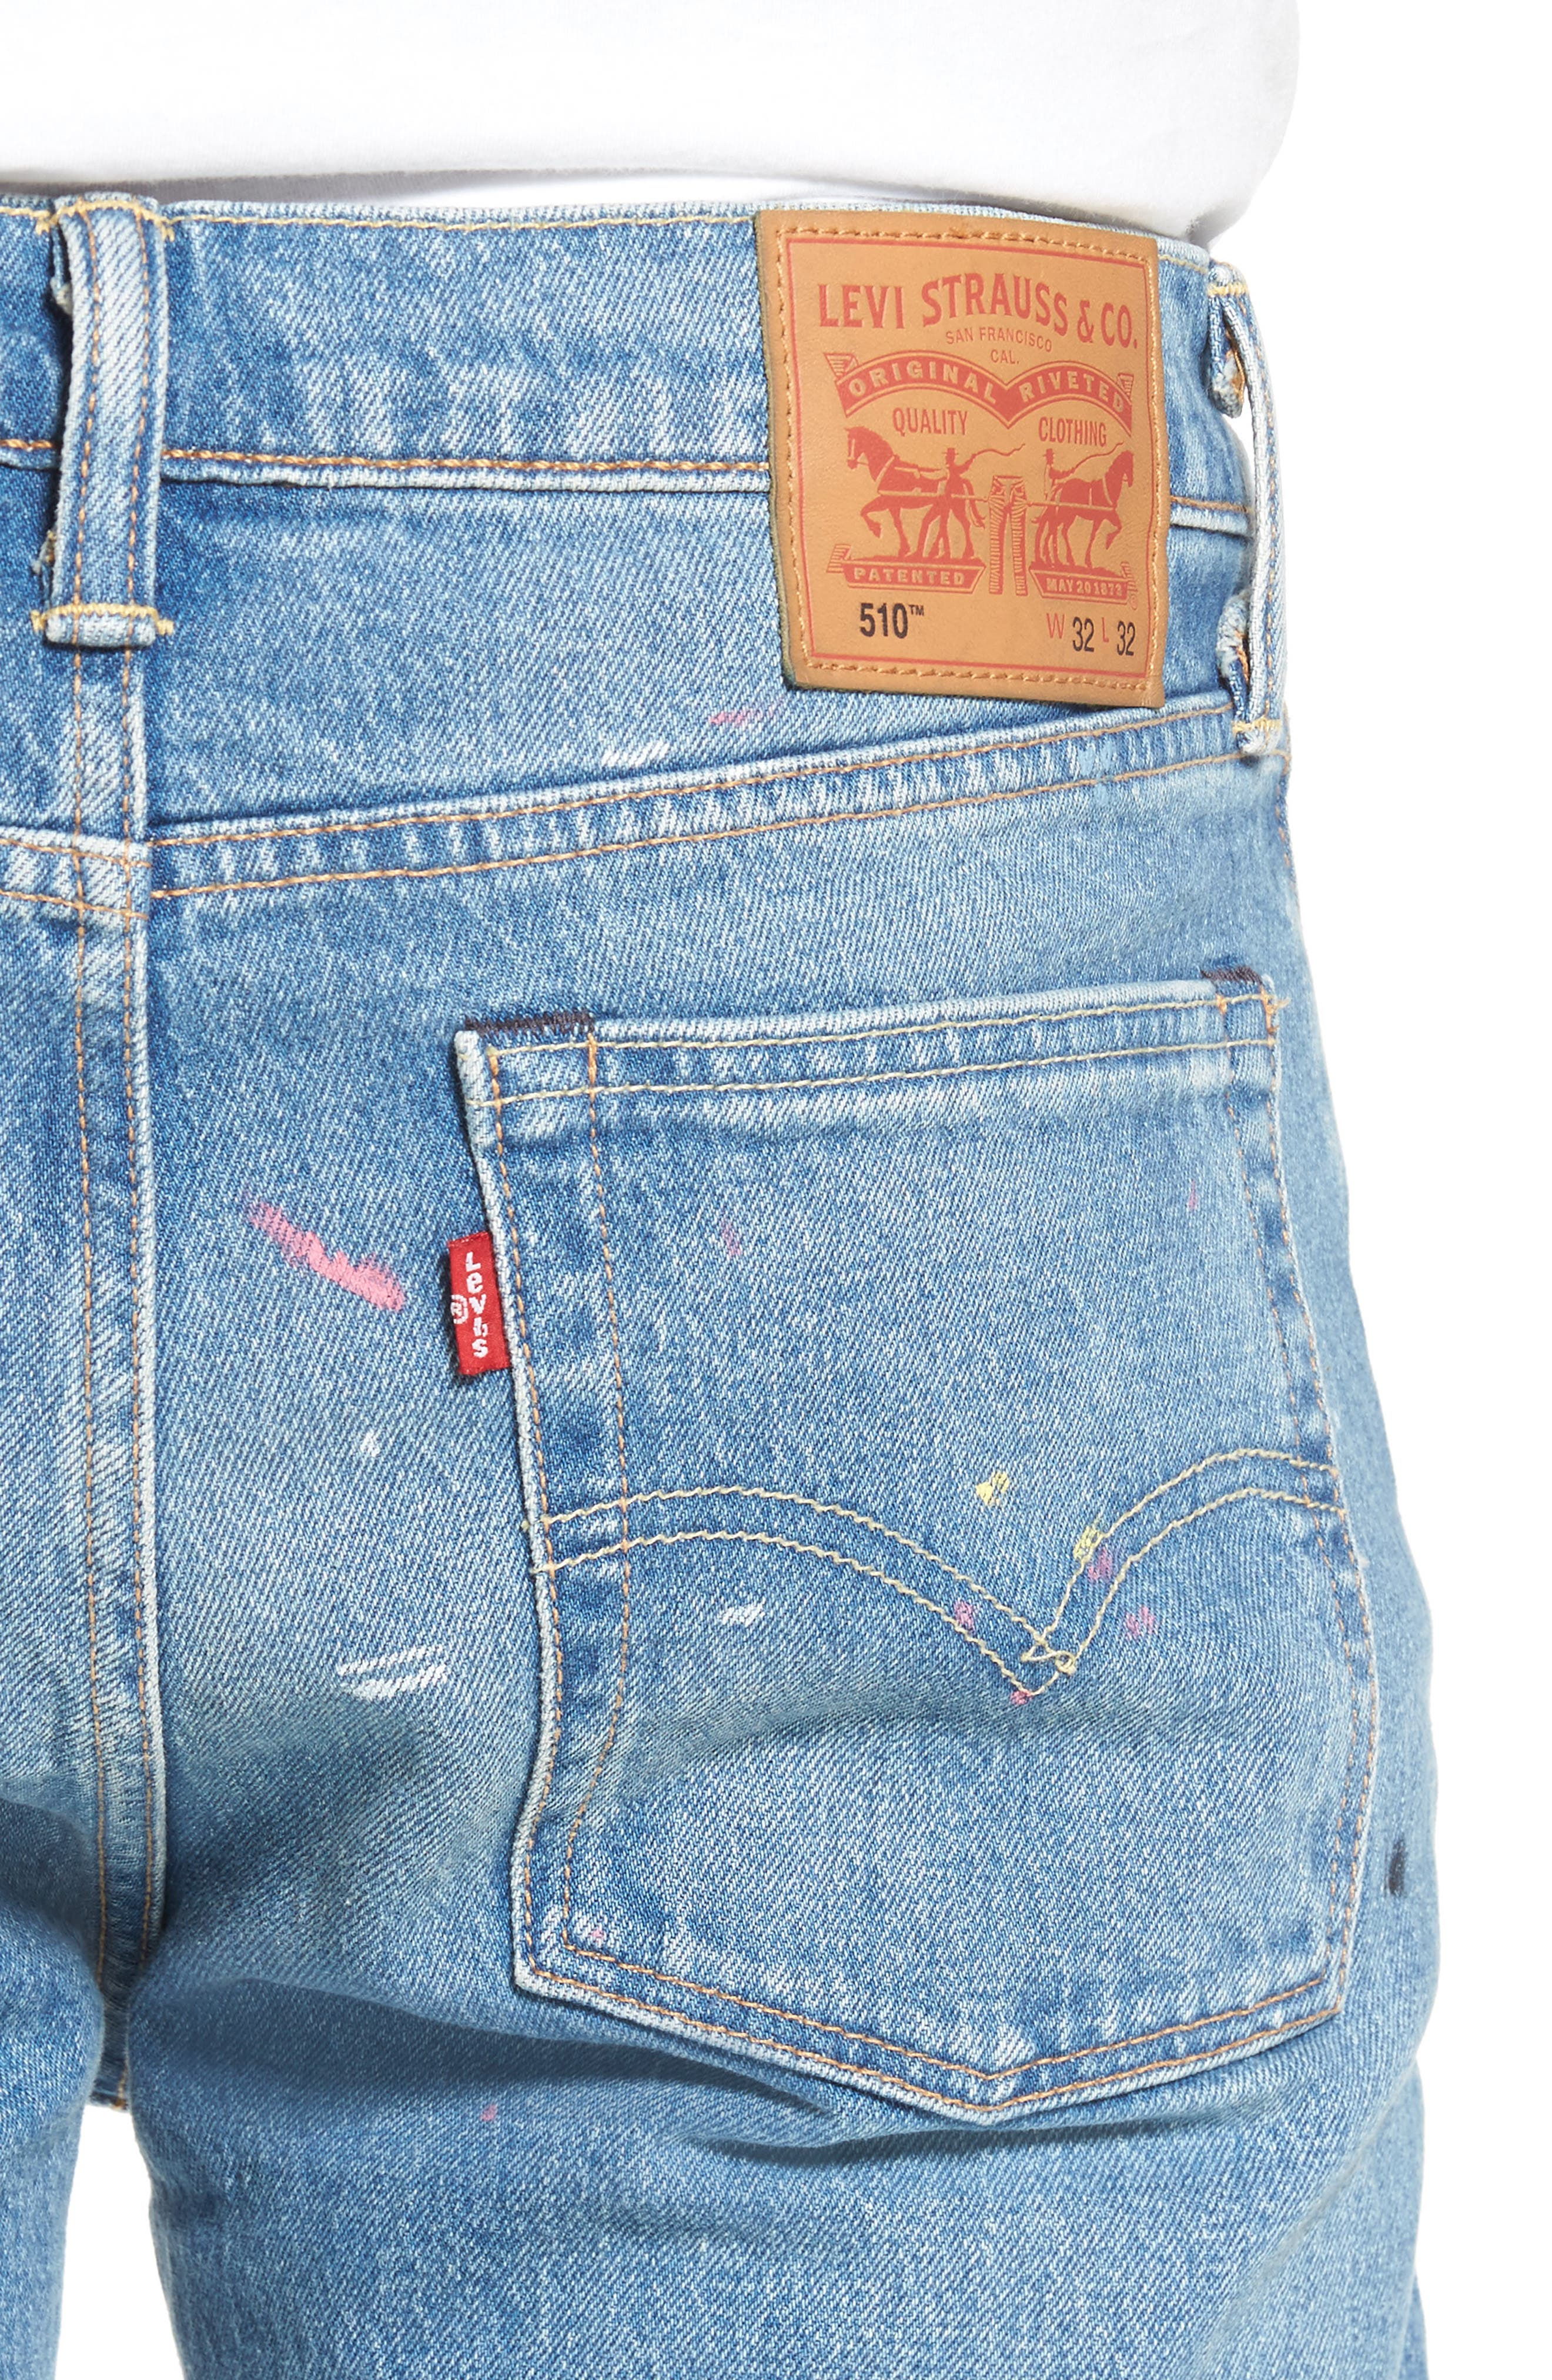 510<sup>™</sup> Skinny Fit Jeans,                             Alternate thumbnail 4, color,                             421